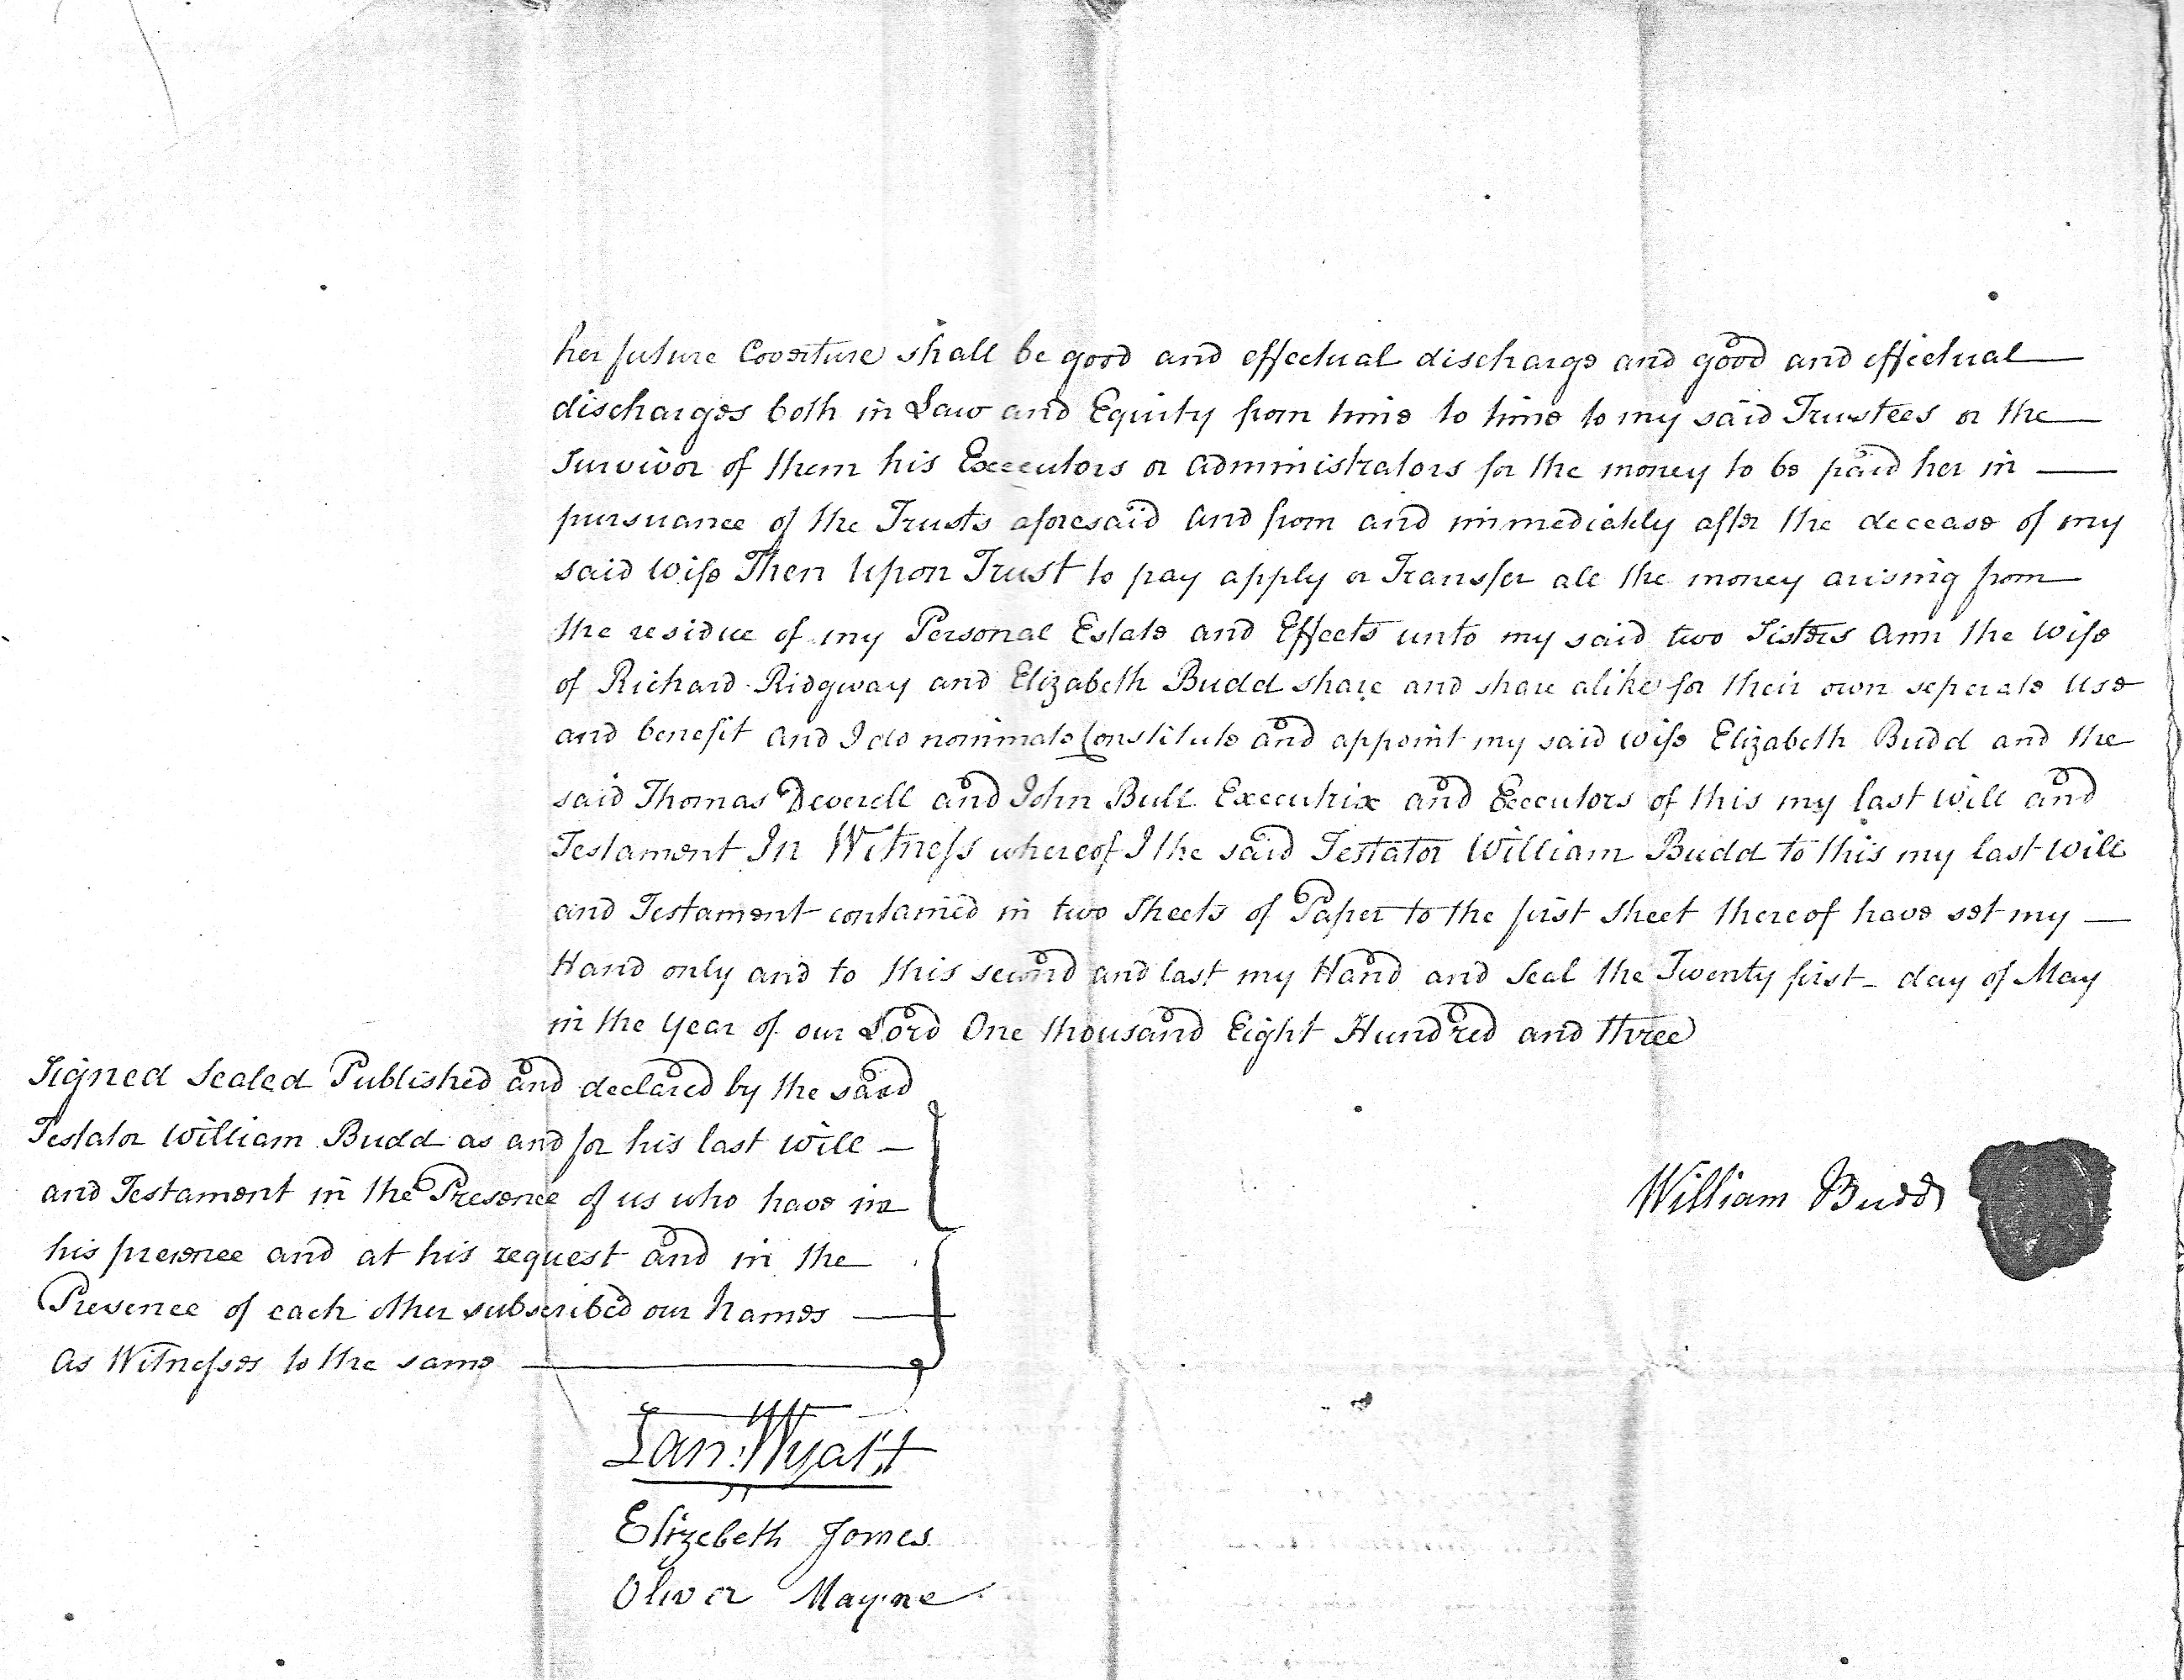 Will of William Budd p2